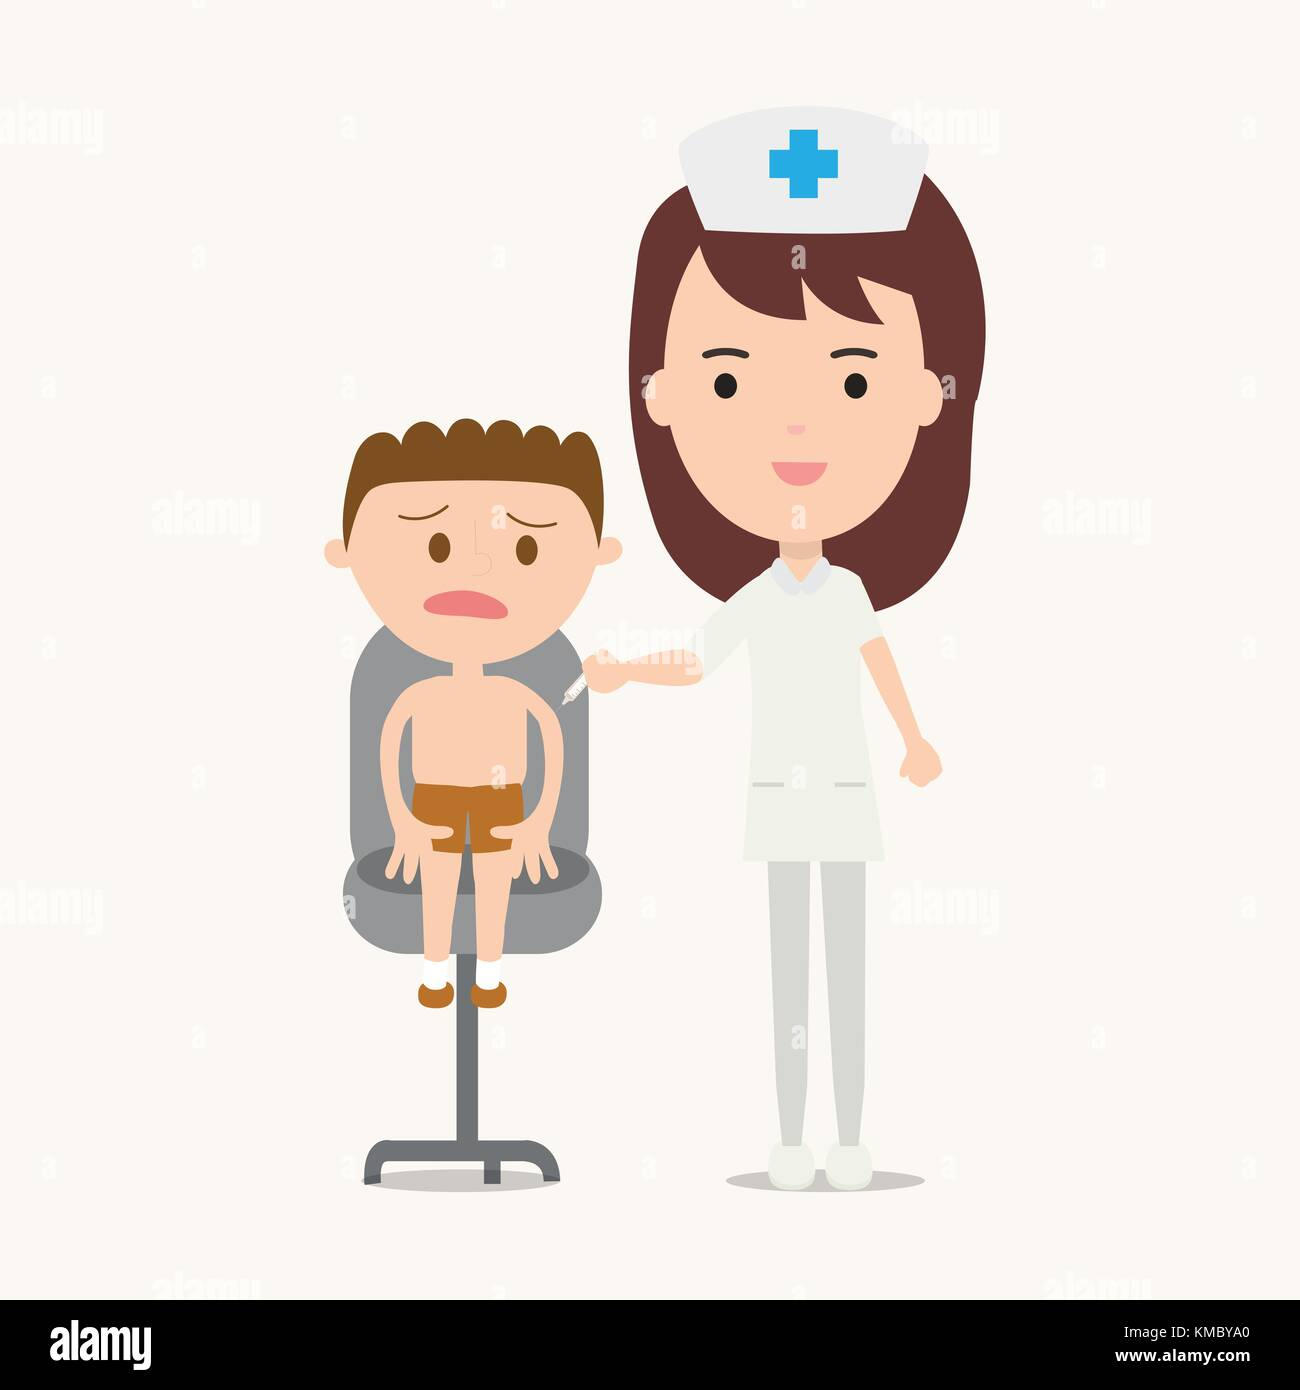 Nurse giving vaccination injection to boy vector illustration - Stock Vector